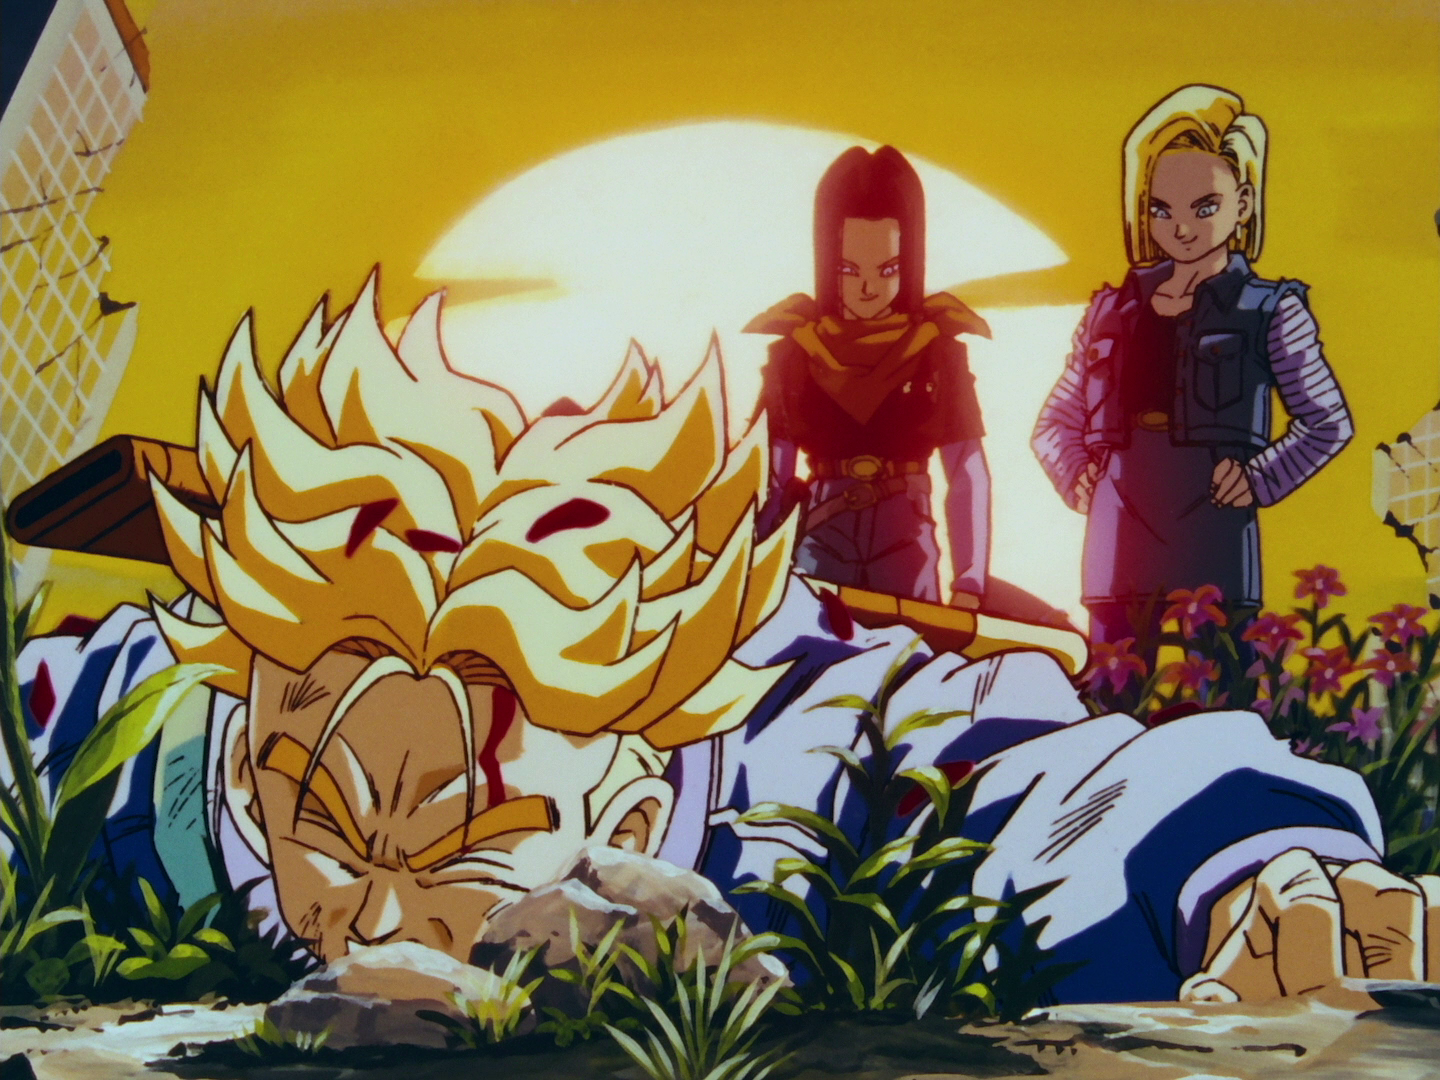 File:TrunksFutureDefeatedByAndroids.png